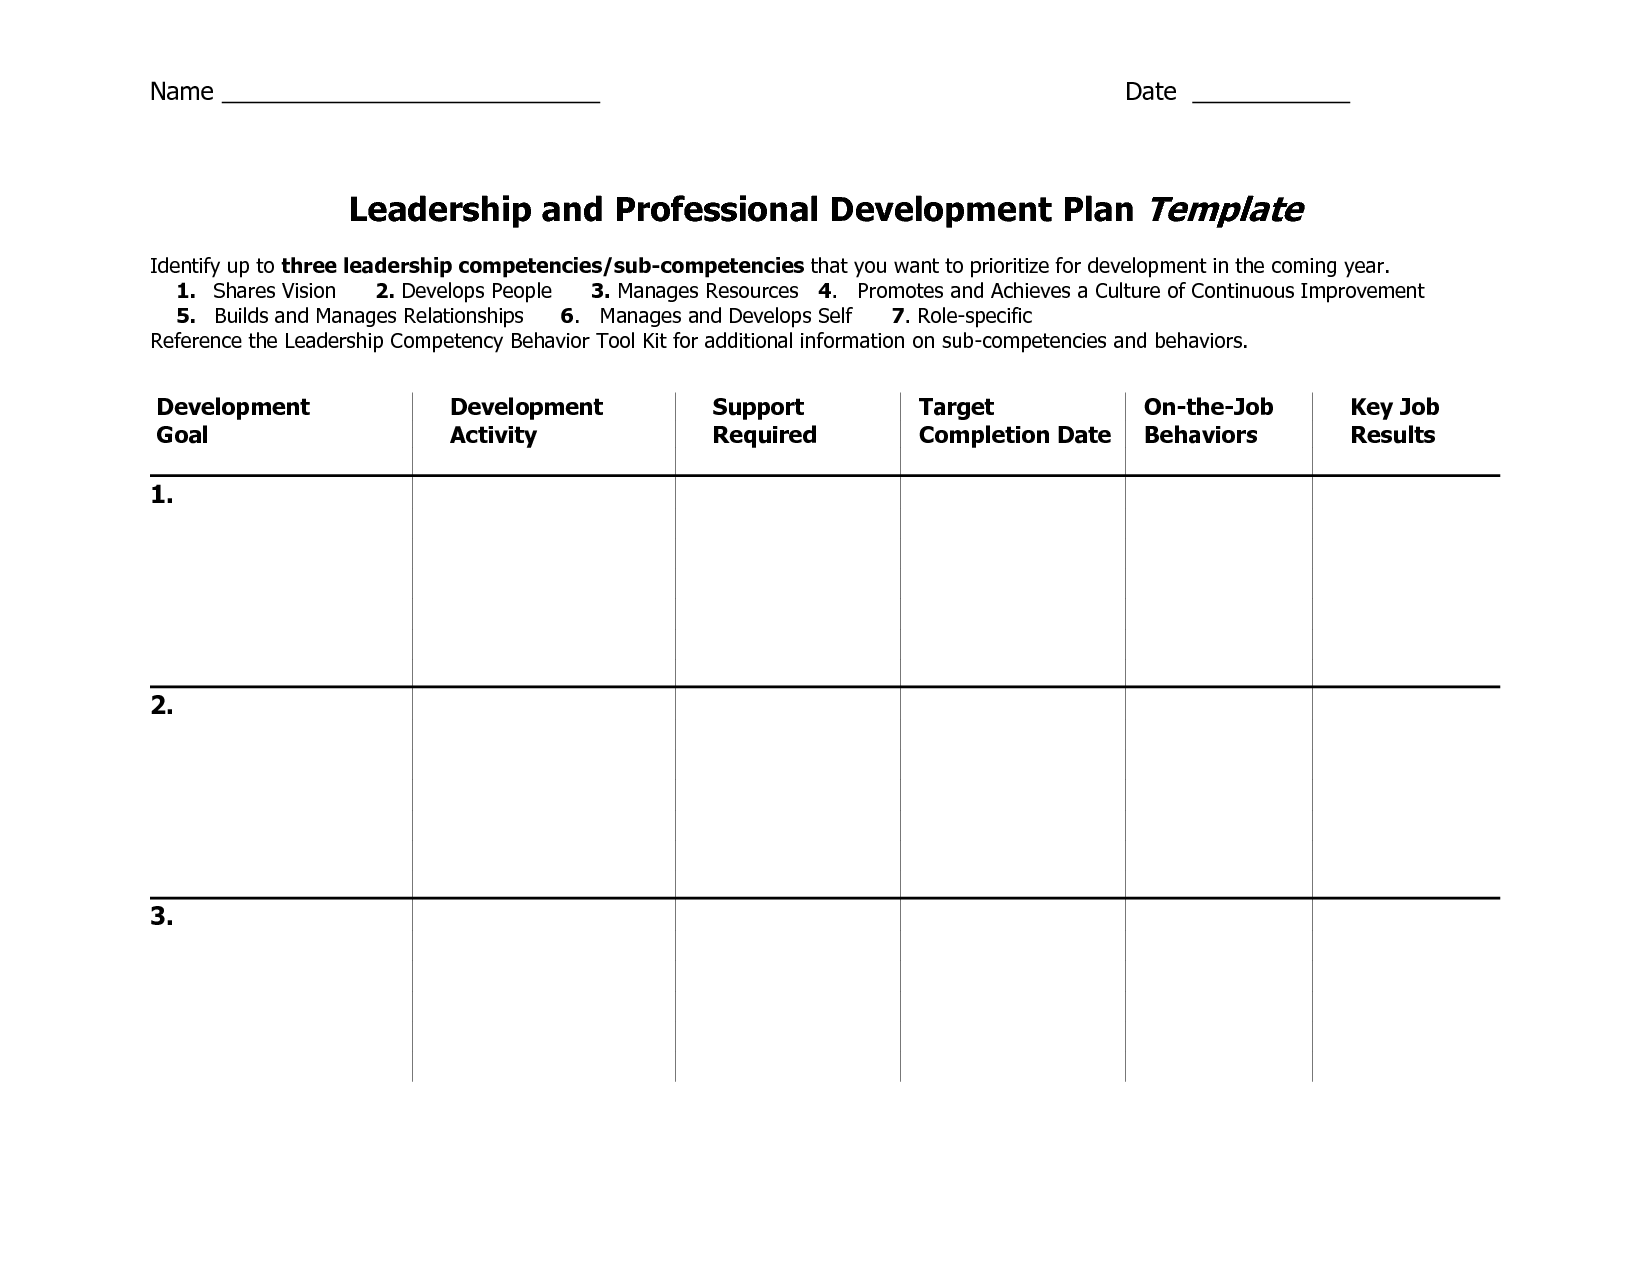 Individual development plan template word google search for Employee professional development plan template